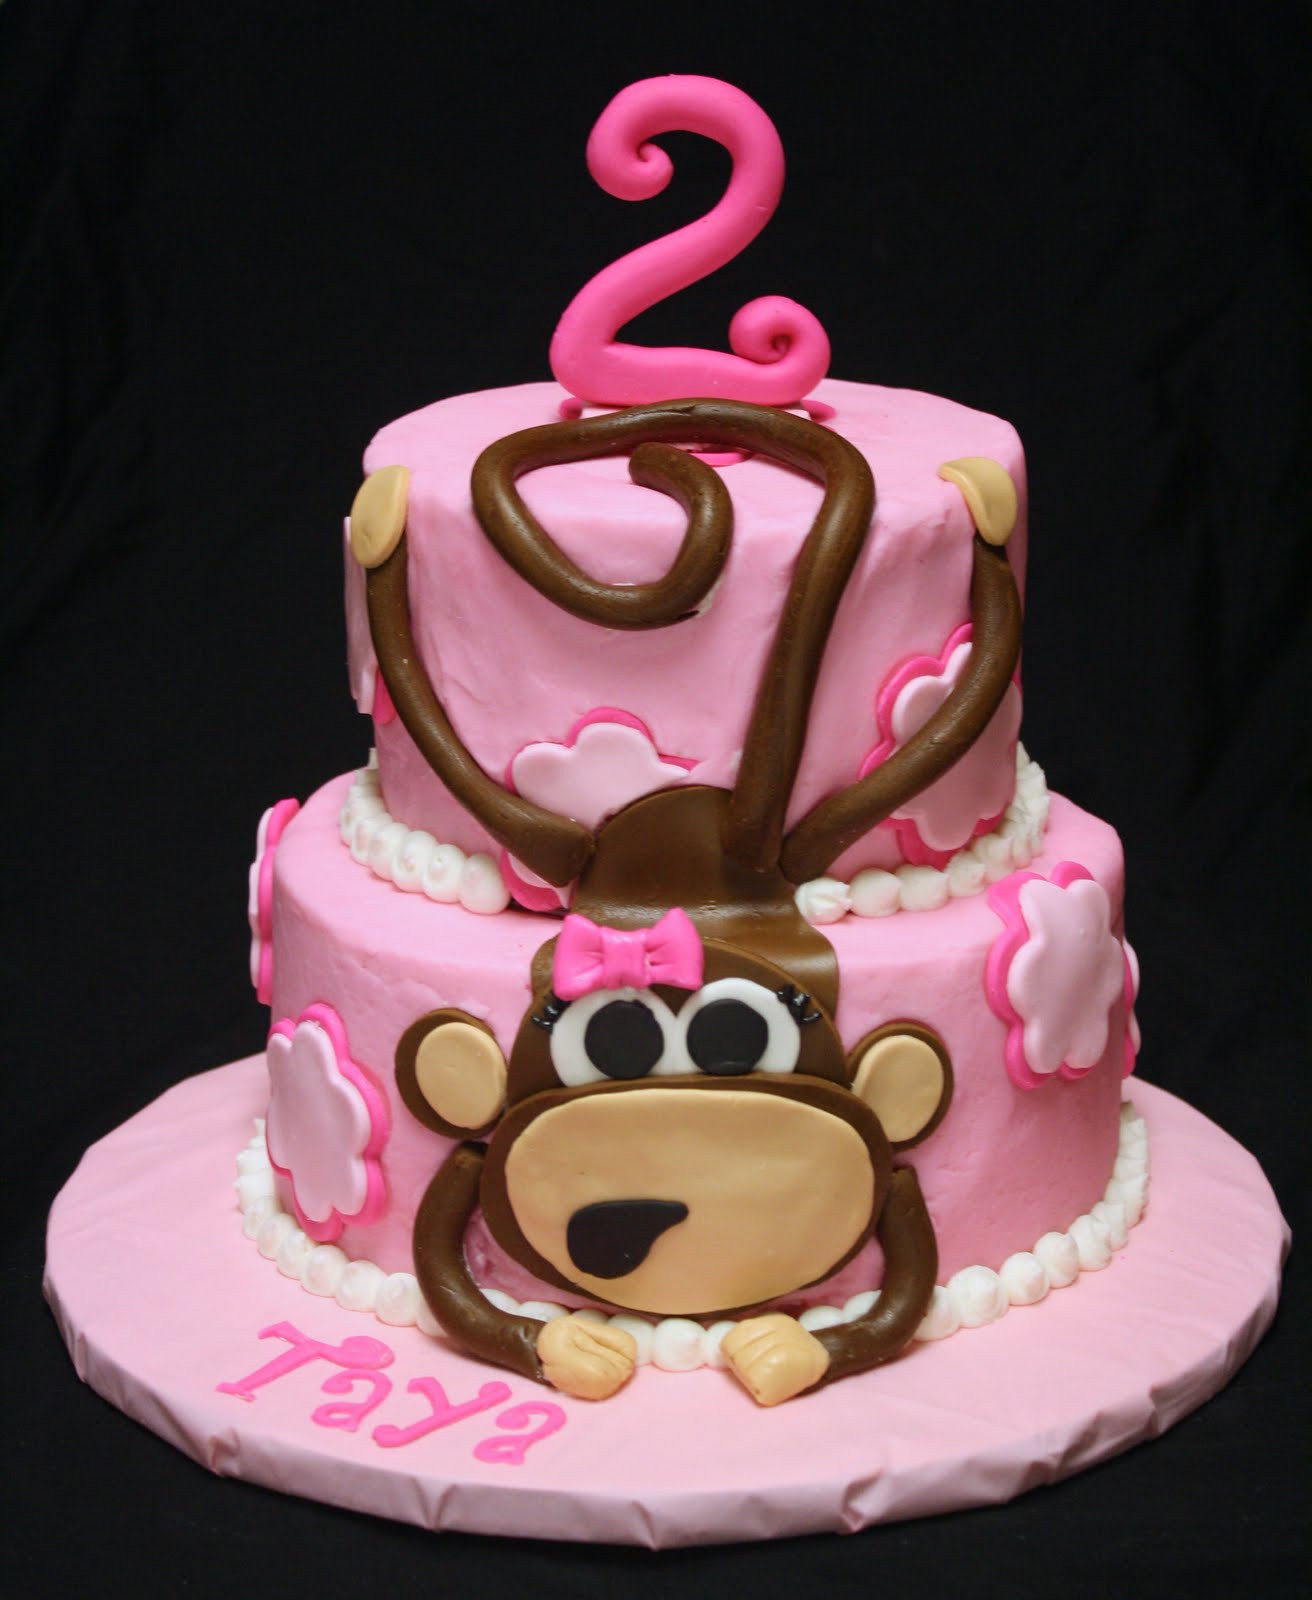 Best ideas about Monkey Birthday Cake . Save or Pin Rose Bakes A Pink Monkey Cake Now.